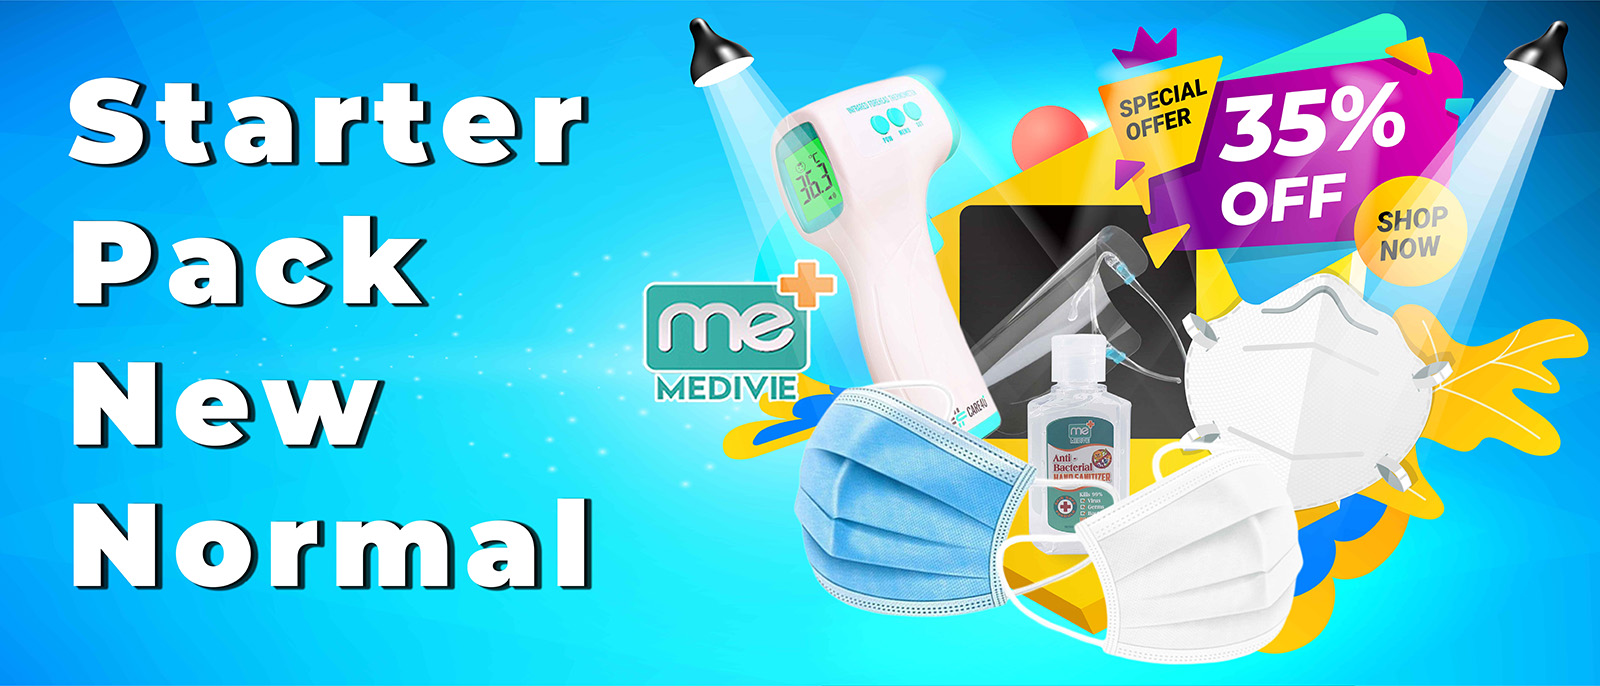 Everything you need in Home 2